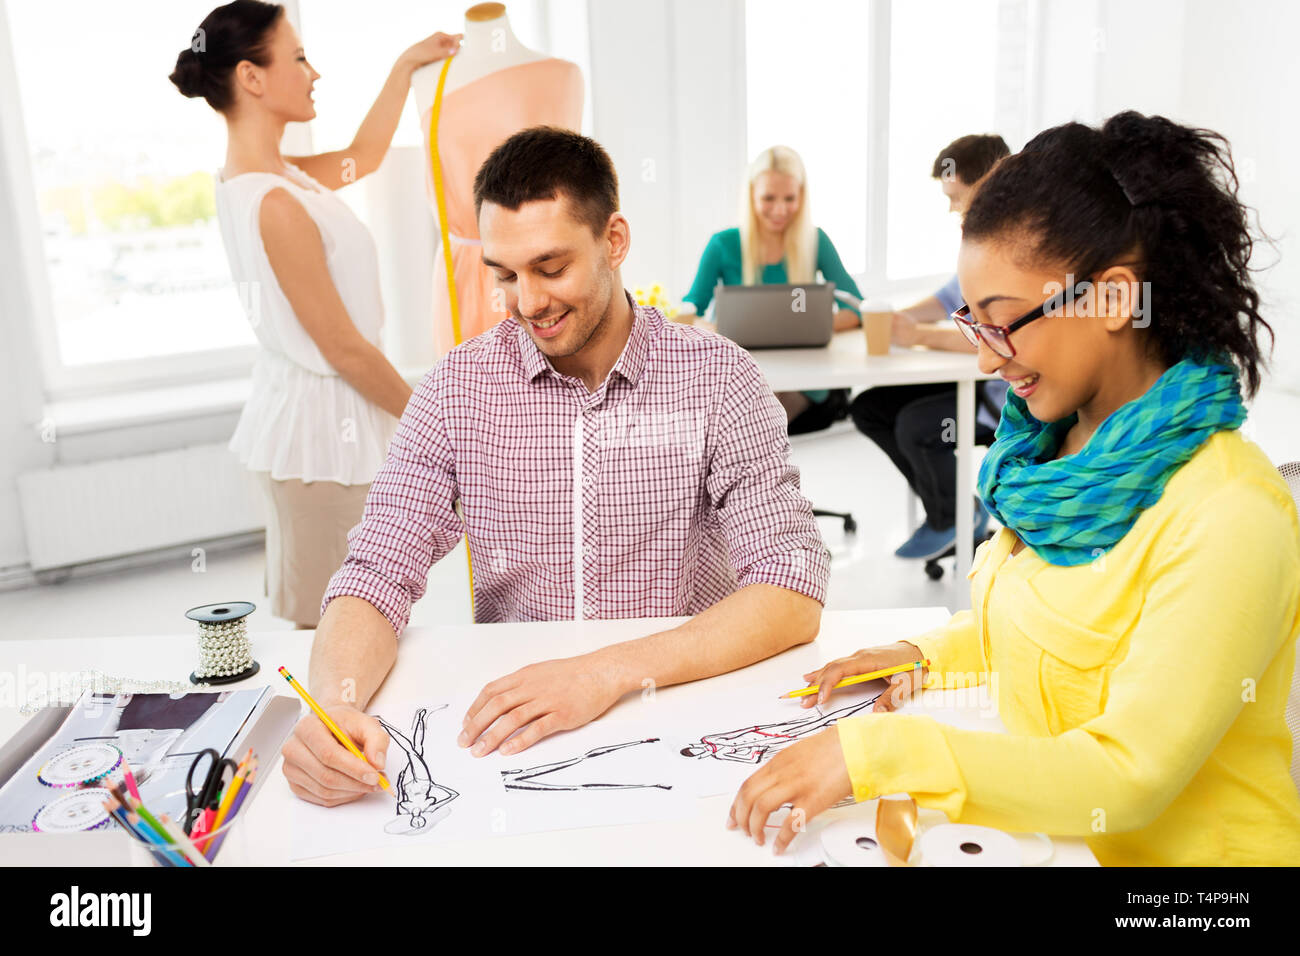 Fashion Design Tailoring And People Concept Team Of Designers Drawing Sketches At Studio Stock Photo Alamy